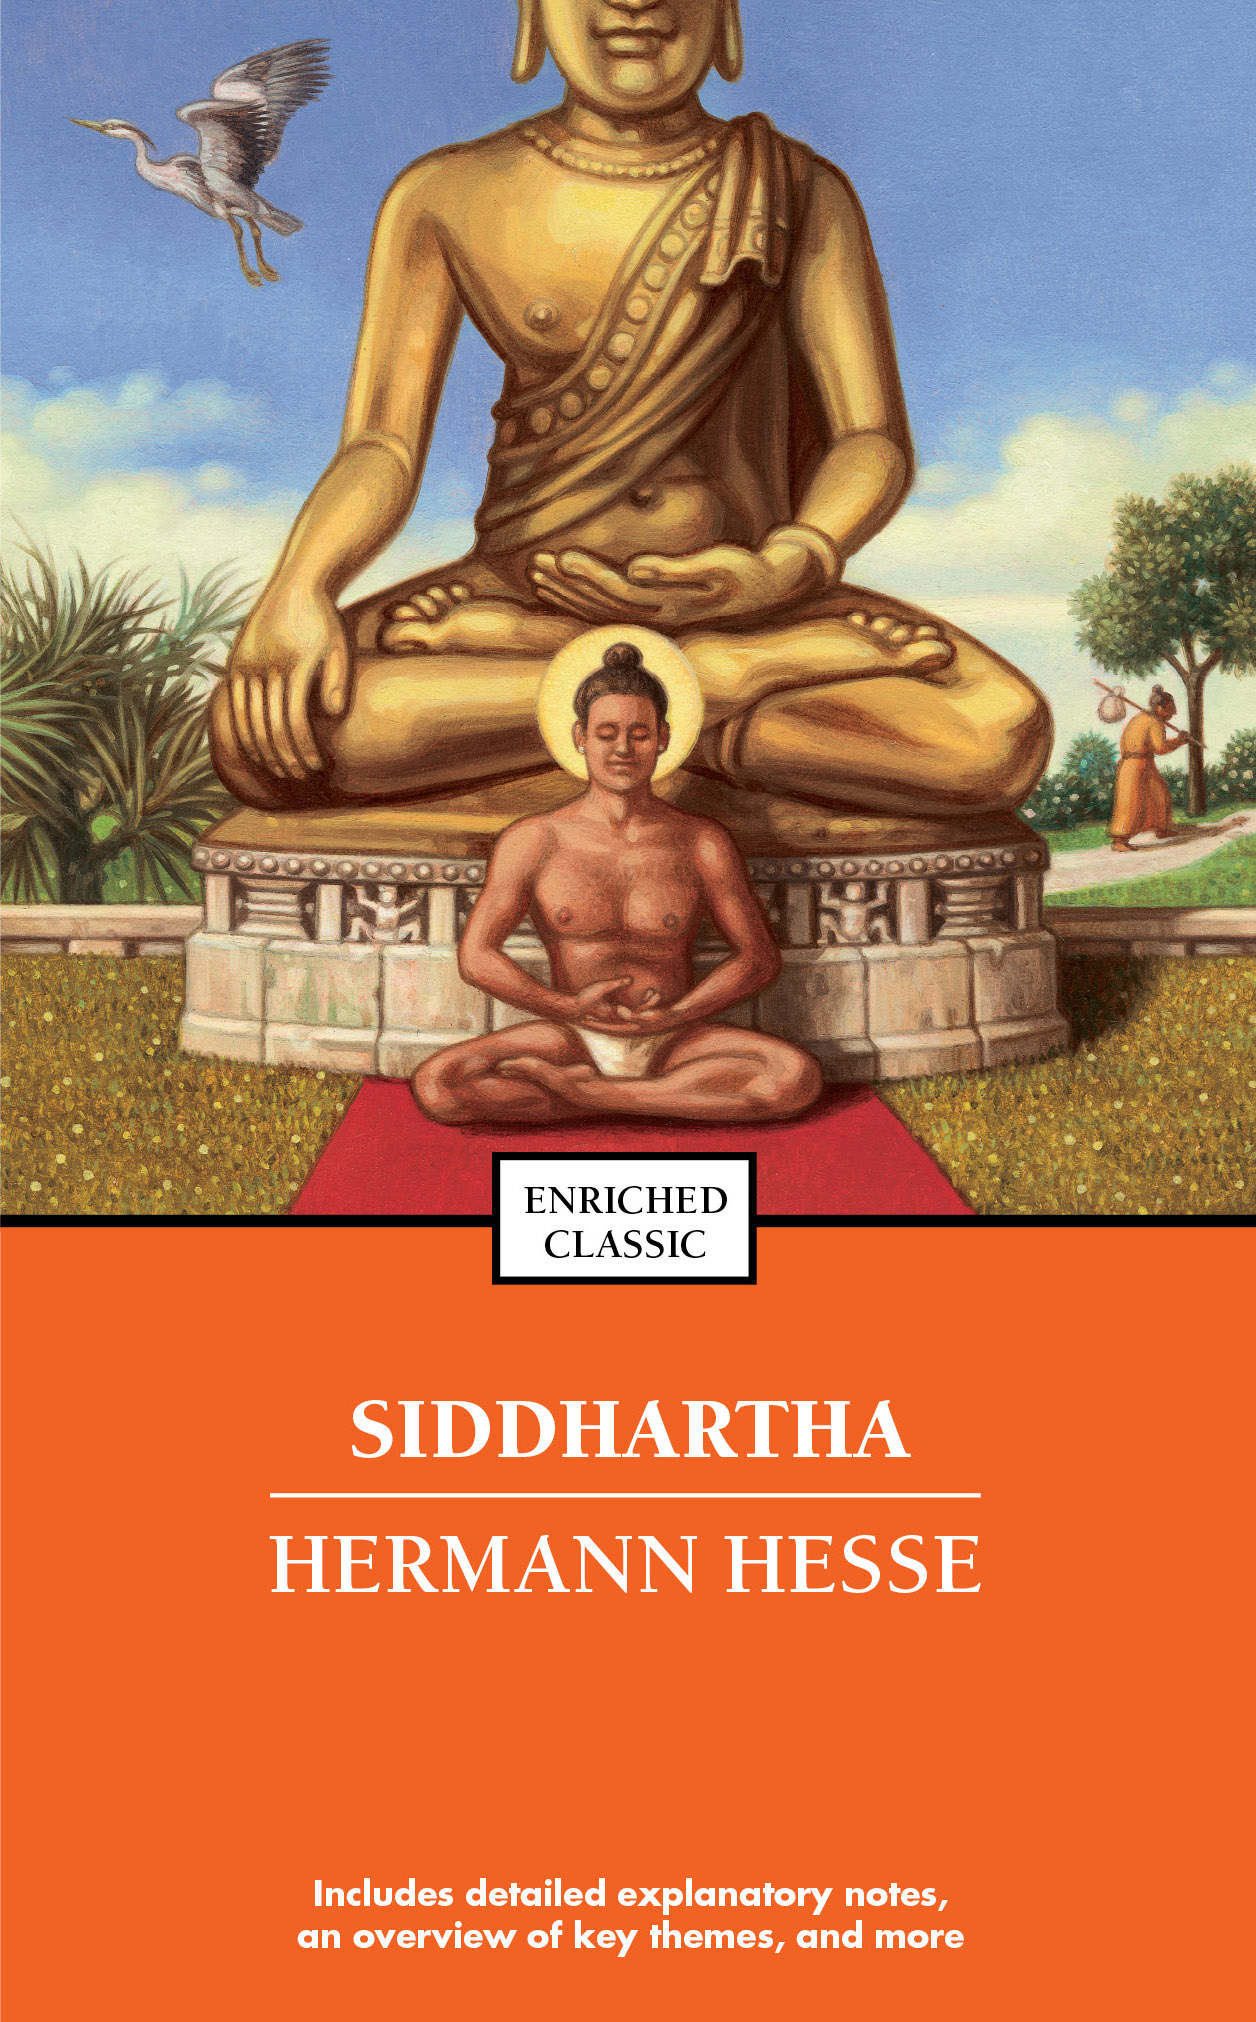 siddhartha hermann hesse thesis Siddhartha hermann hesse essays - queensphysiciancom.